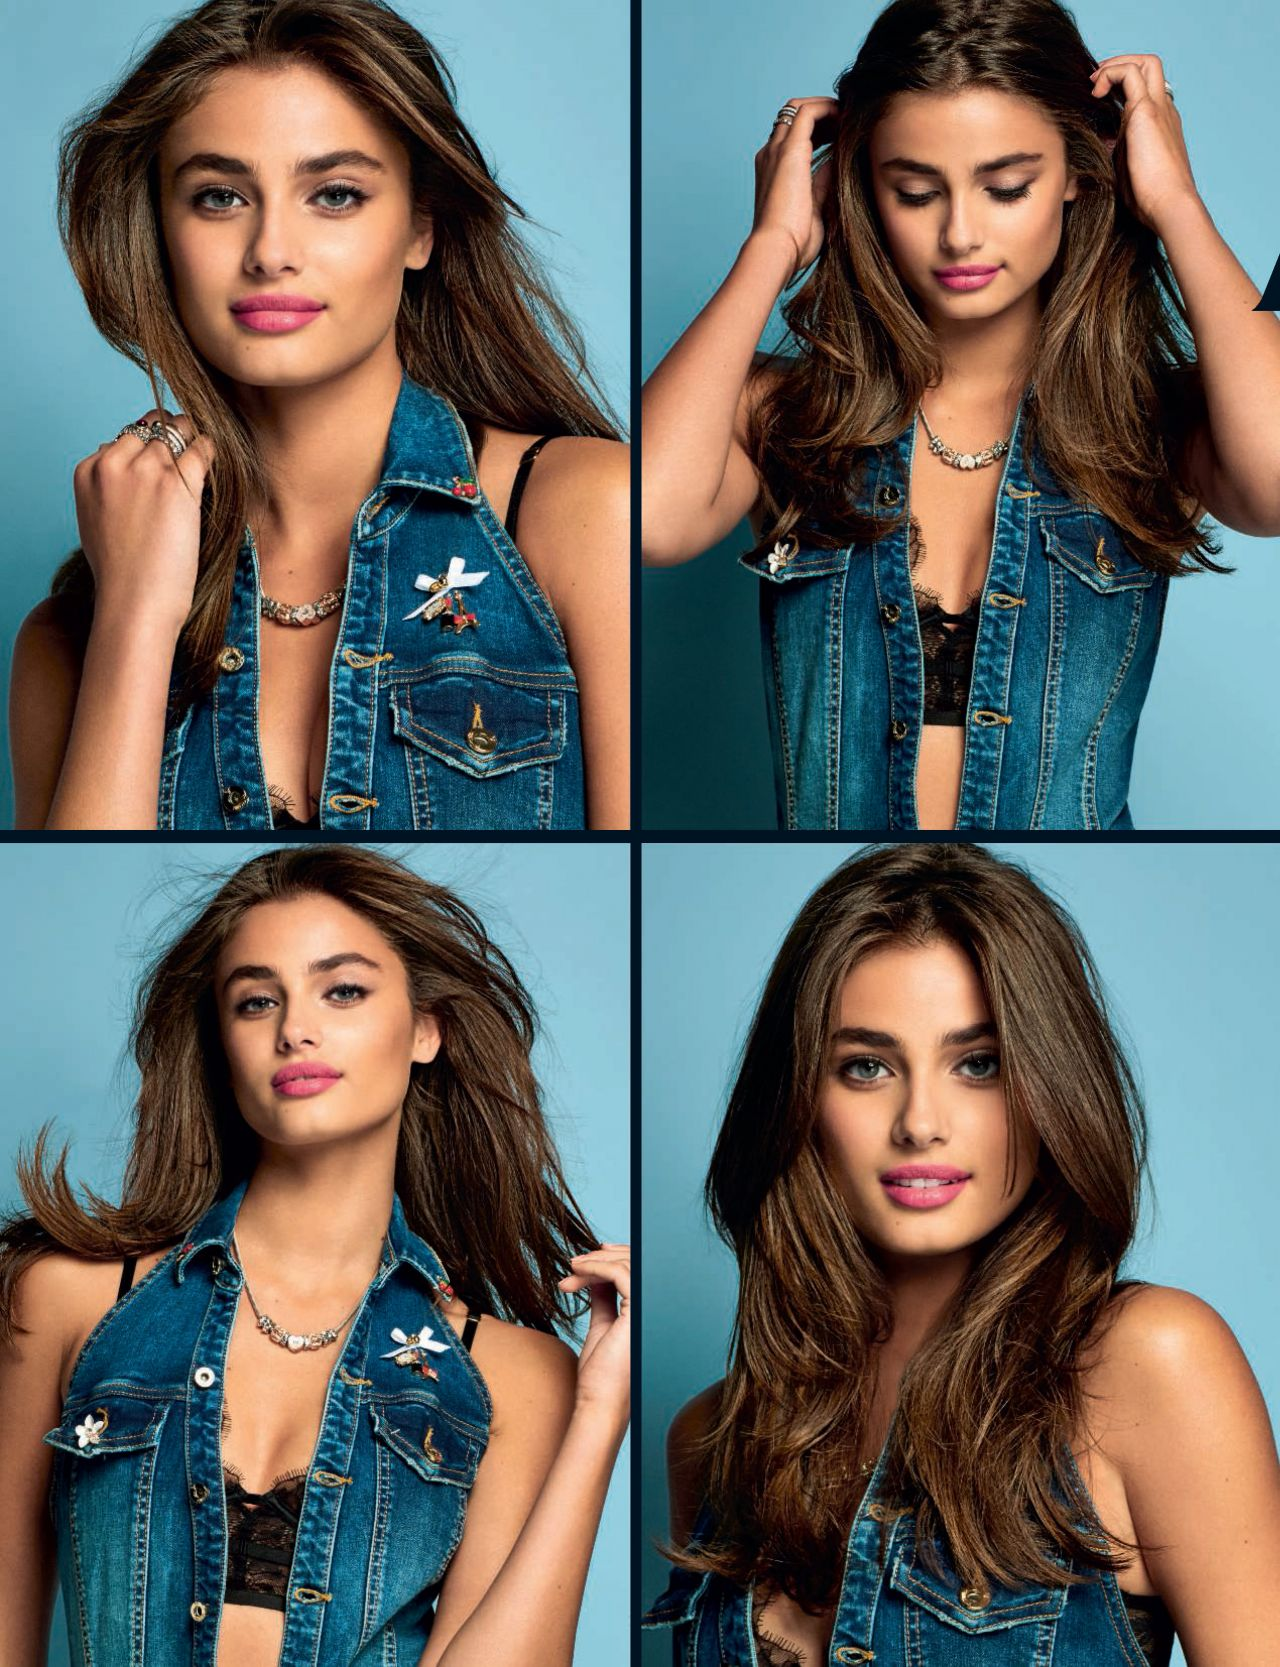 | Projets de LeviSmith | - Page 3 Taylor-hill-cosmopolitan-italy-may-2017-issue-1